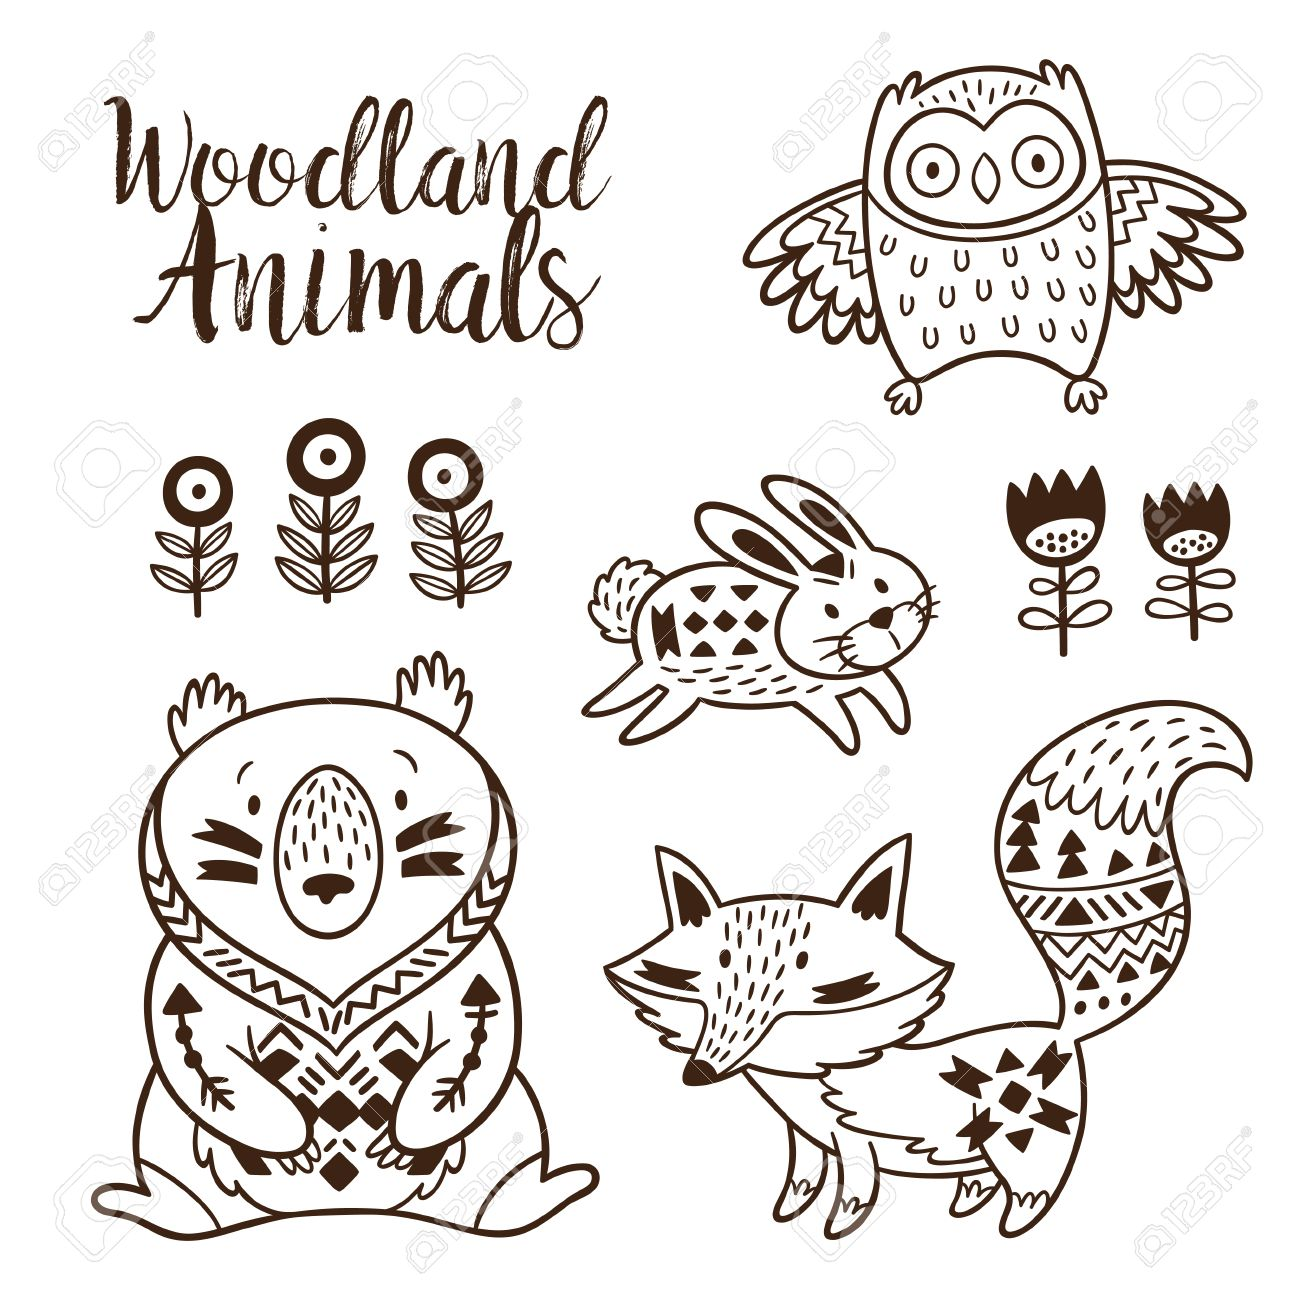 Woodland Animal Coloring Pages For Kids. Hand Drawn On A White Background.  Coloring Book